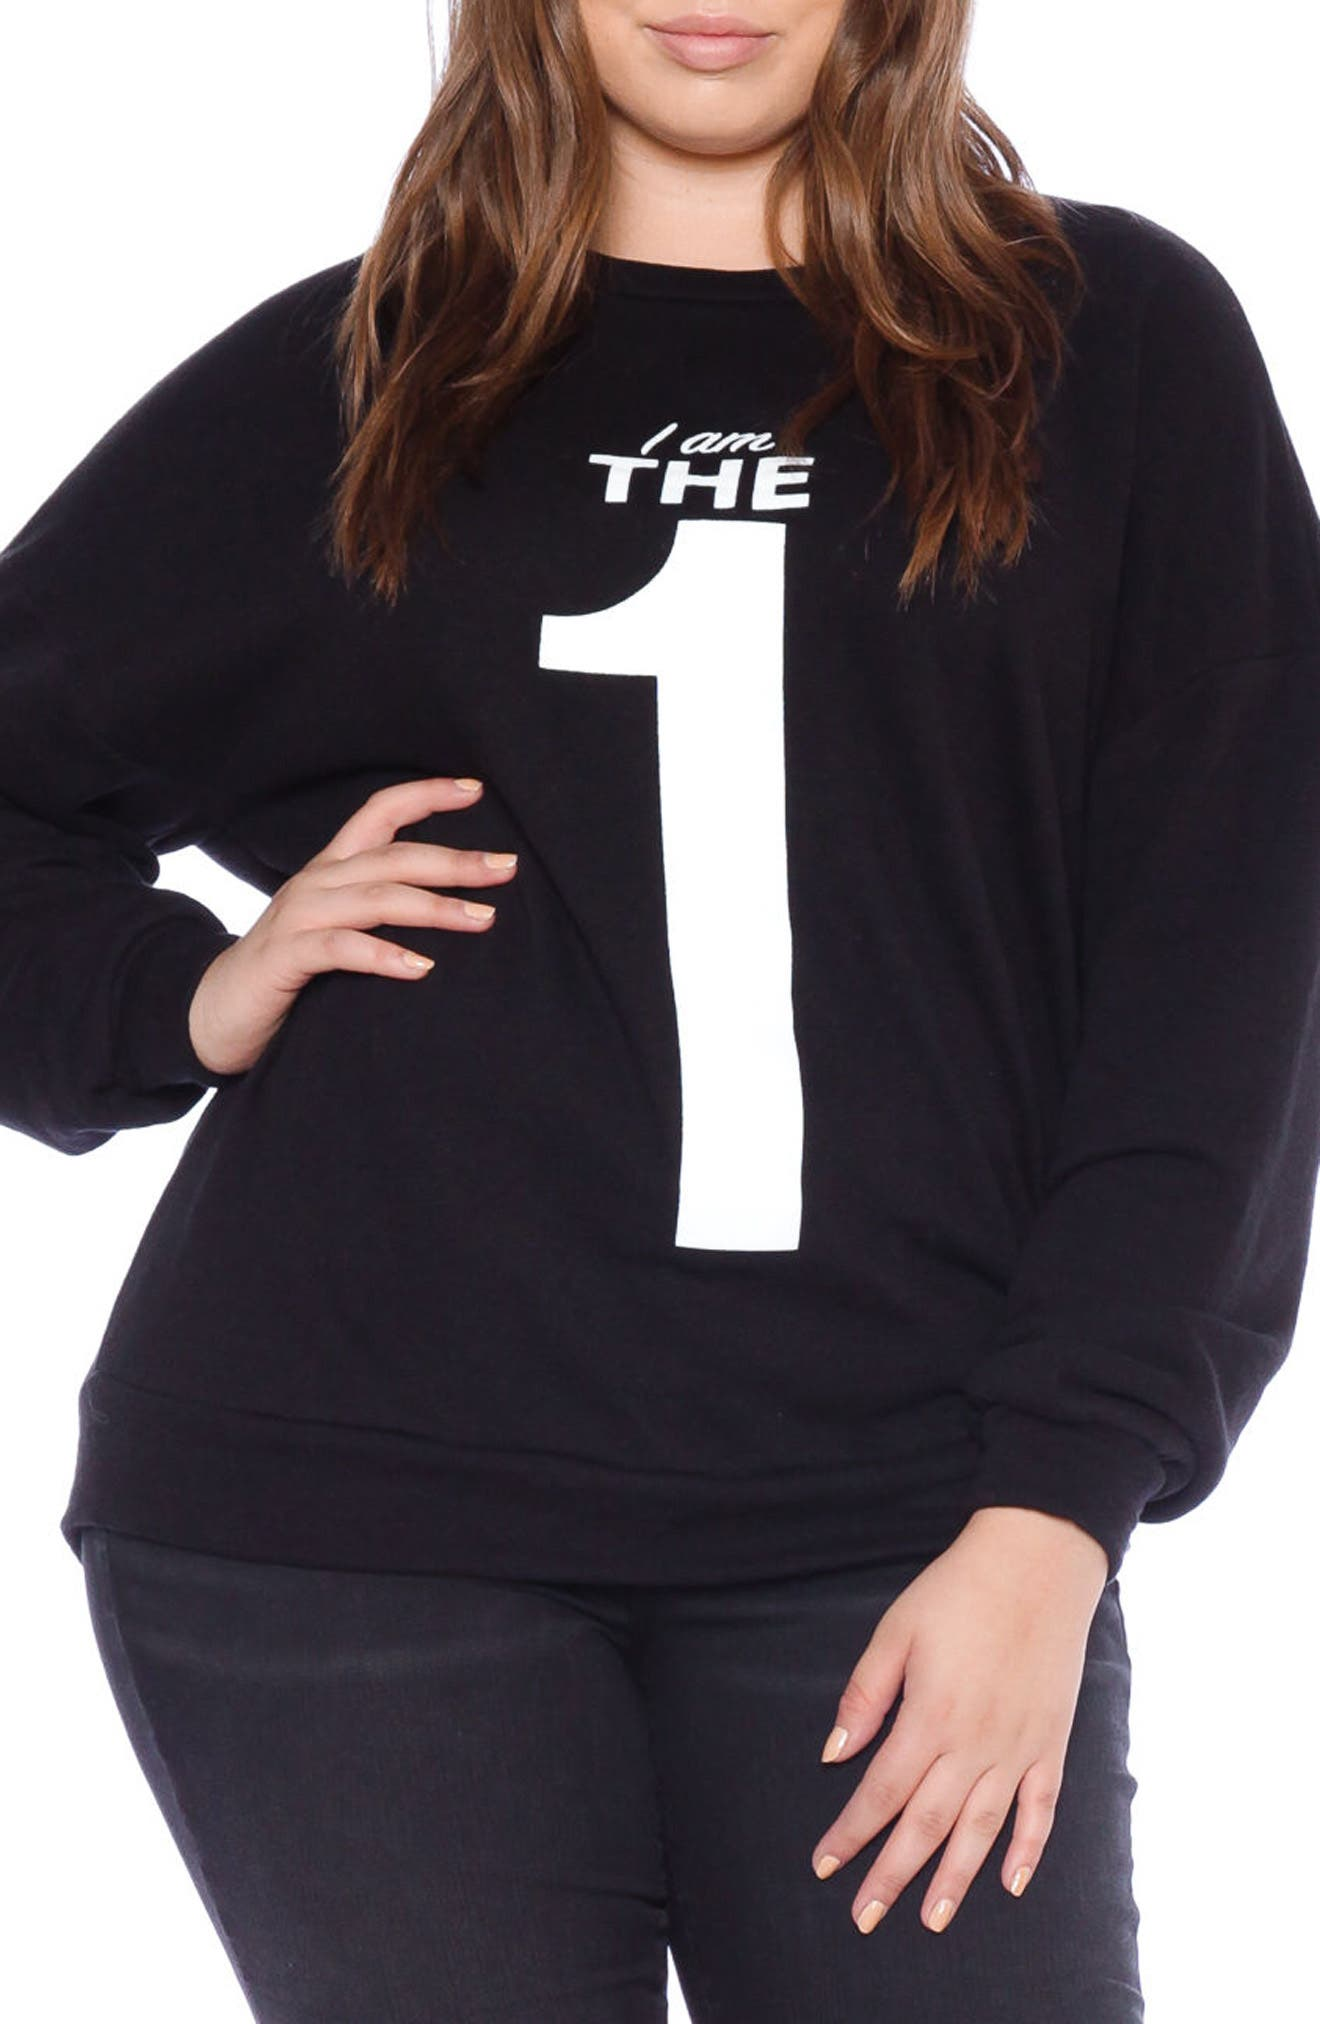 SLINK JEANS I Am The One Oversize Sweatshirt in Black